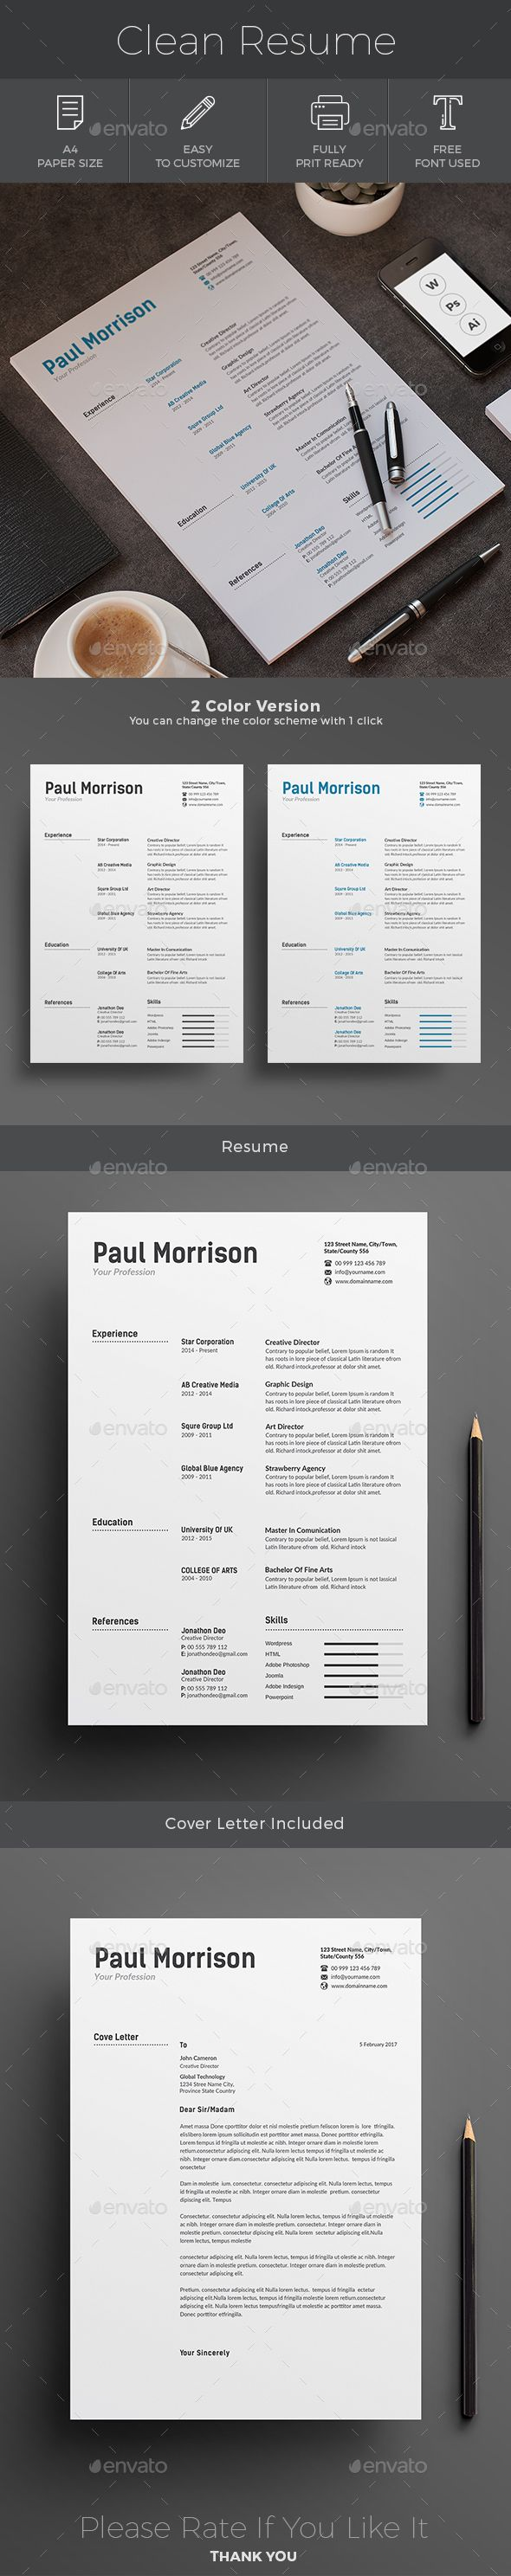 Resume A4 Template PSD AI Illustrator 57